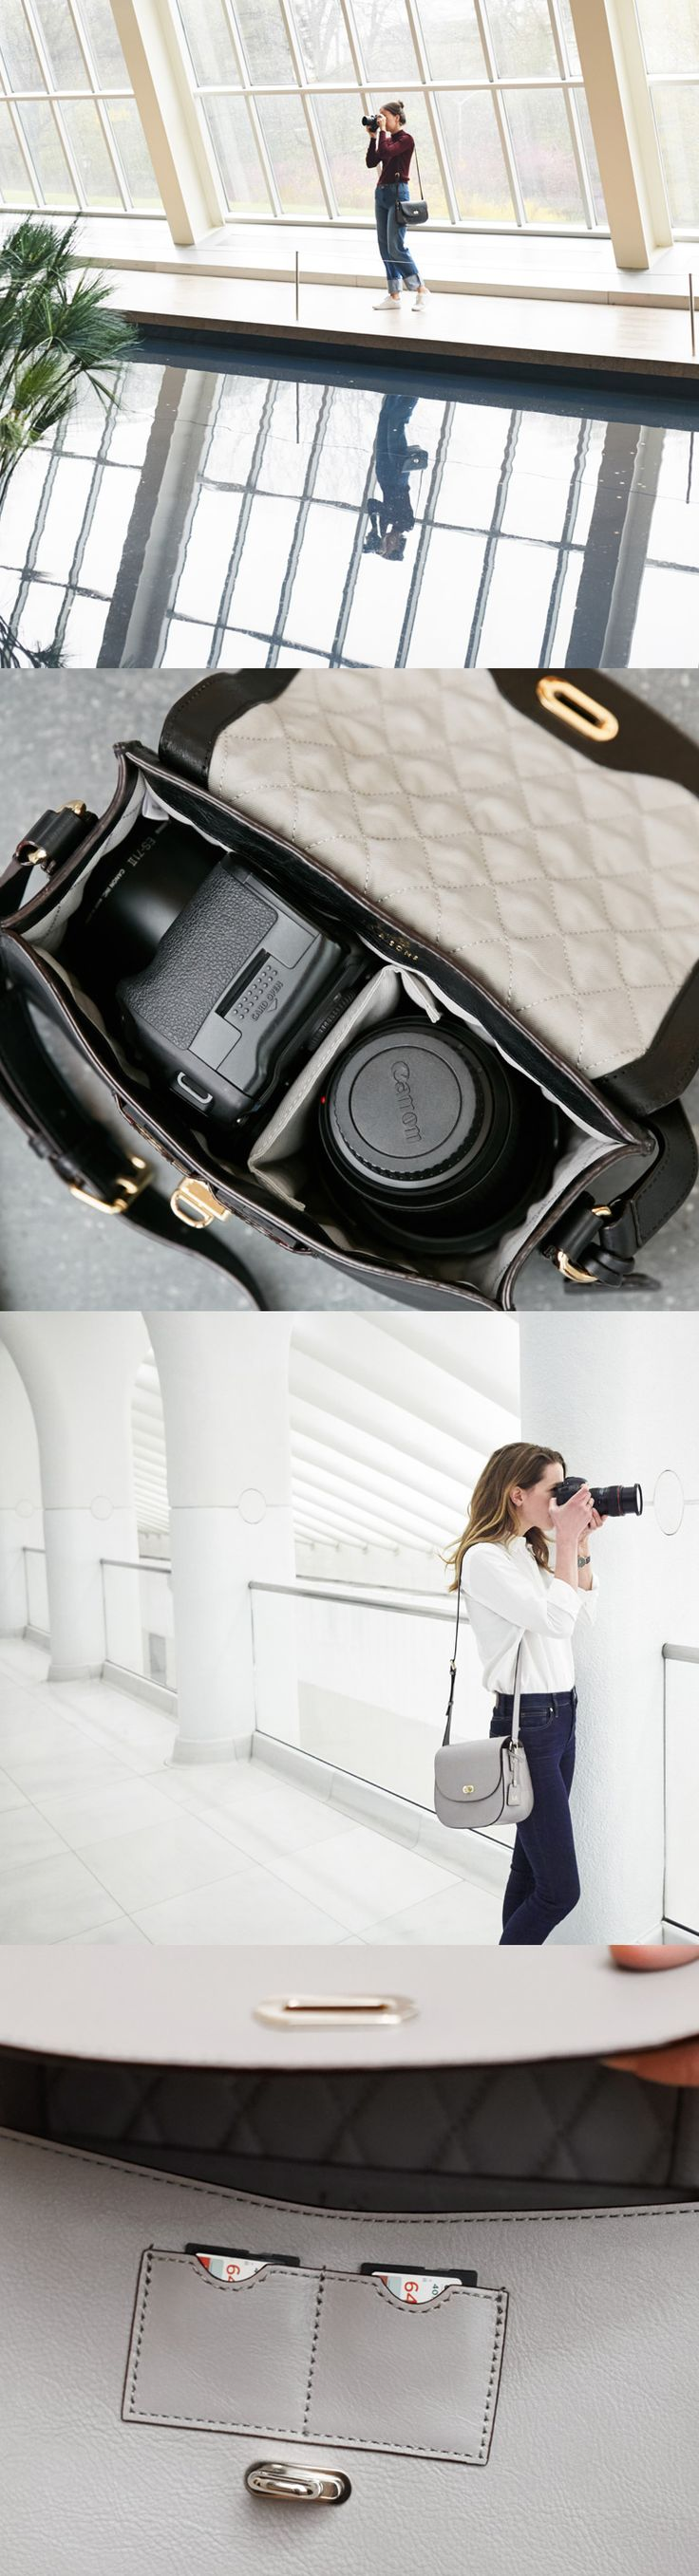 Finally, a camera bag that you'd be proud carry. The Claremont crossbody bag is the perfect accessory for style conscious photographers. Designed by Lo & Sons #loandsons